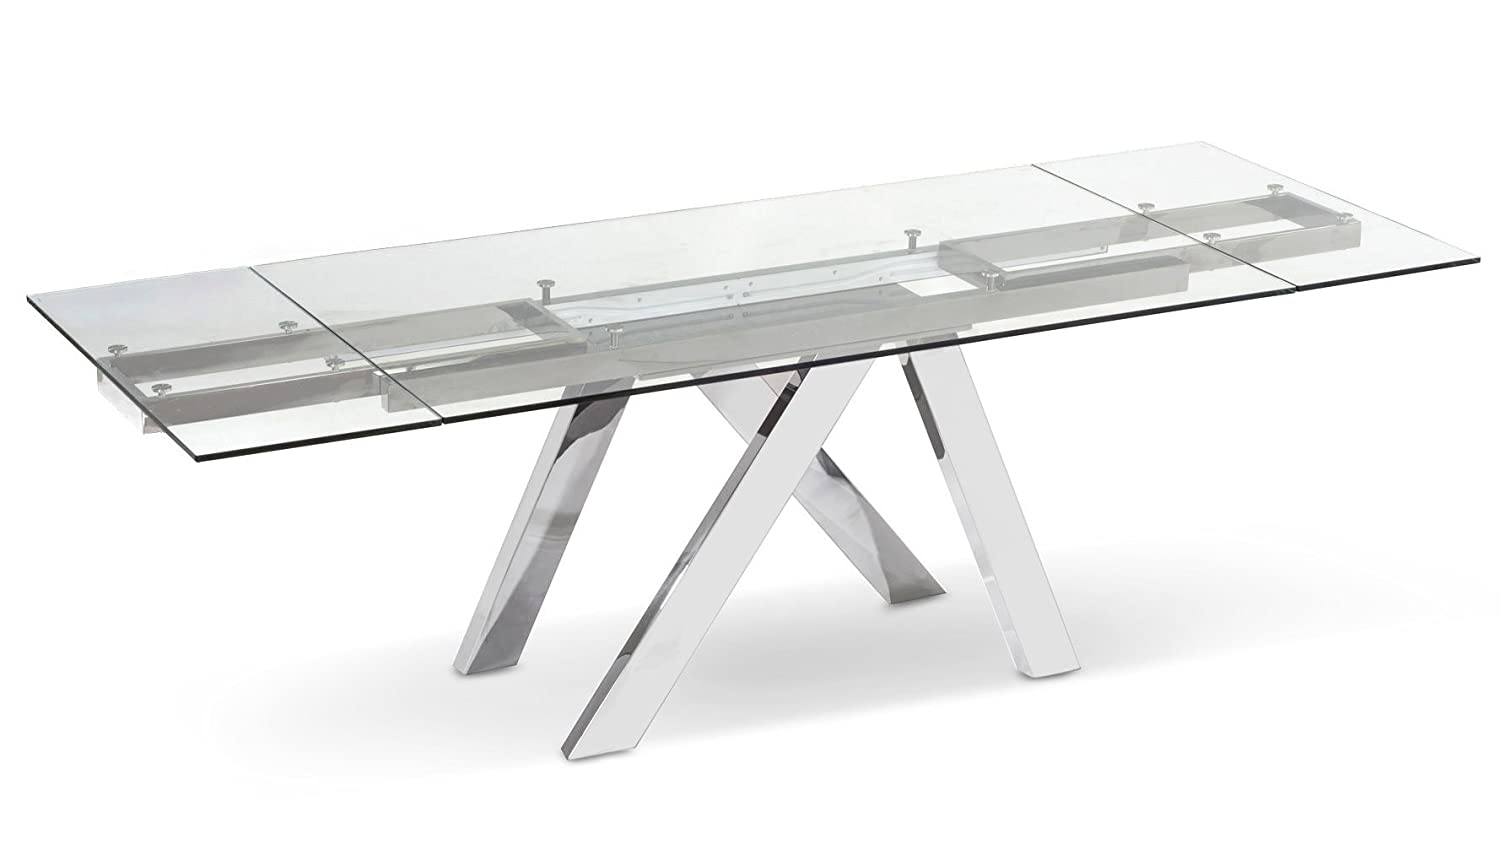 Zuri Furniture Cruz Expandable Modern Dining Table with Clear Glass Top